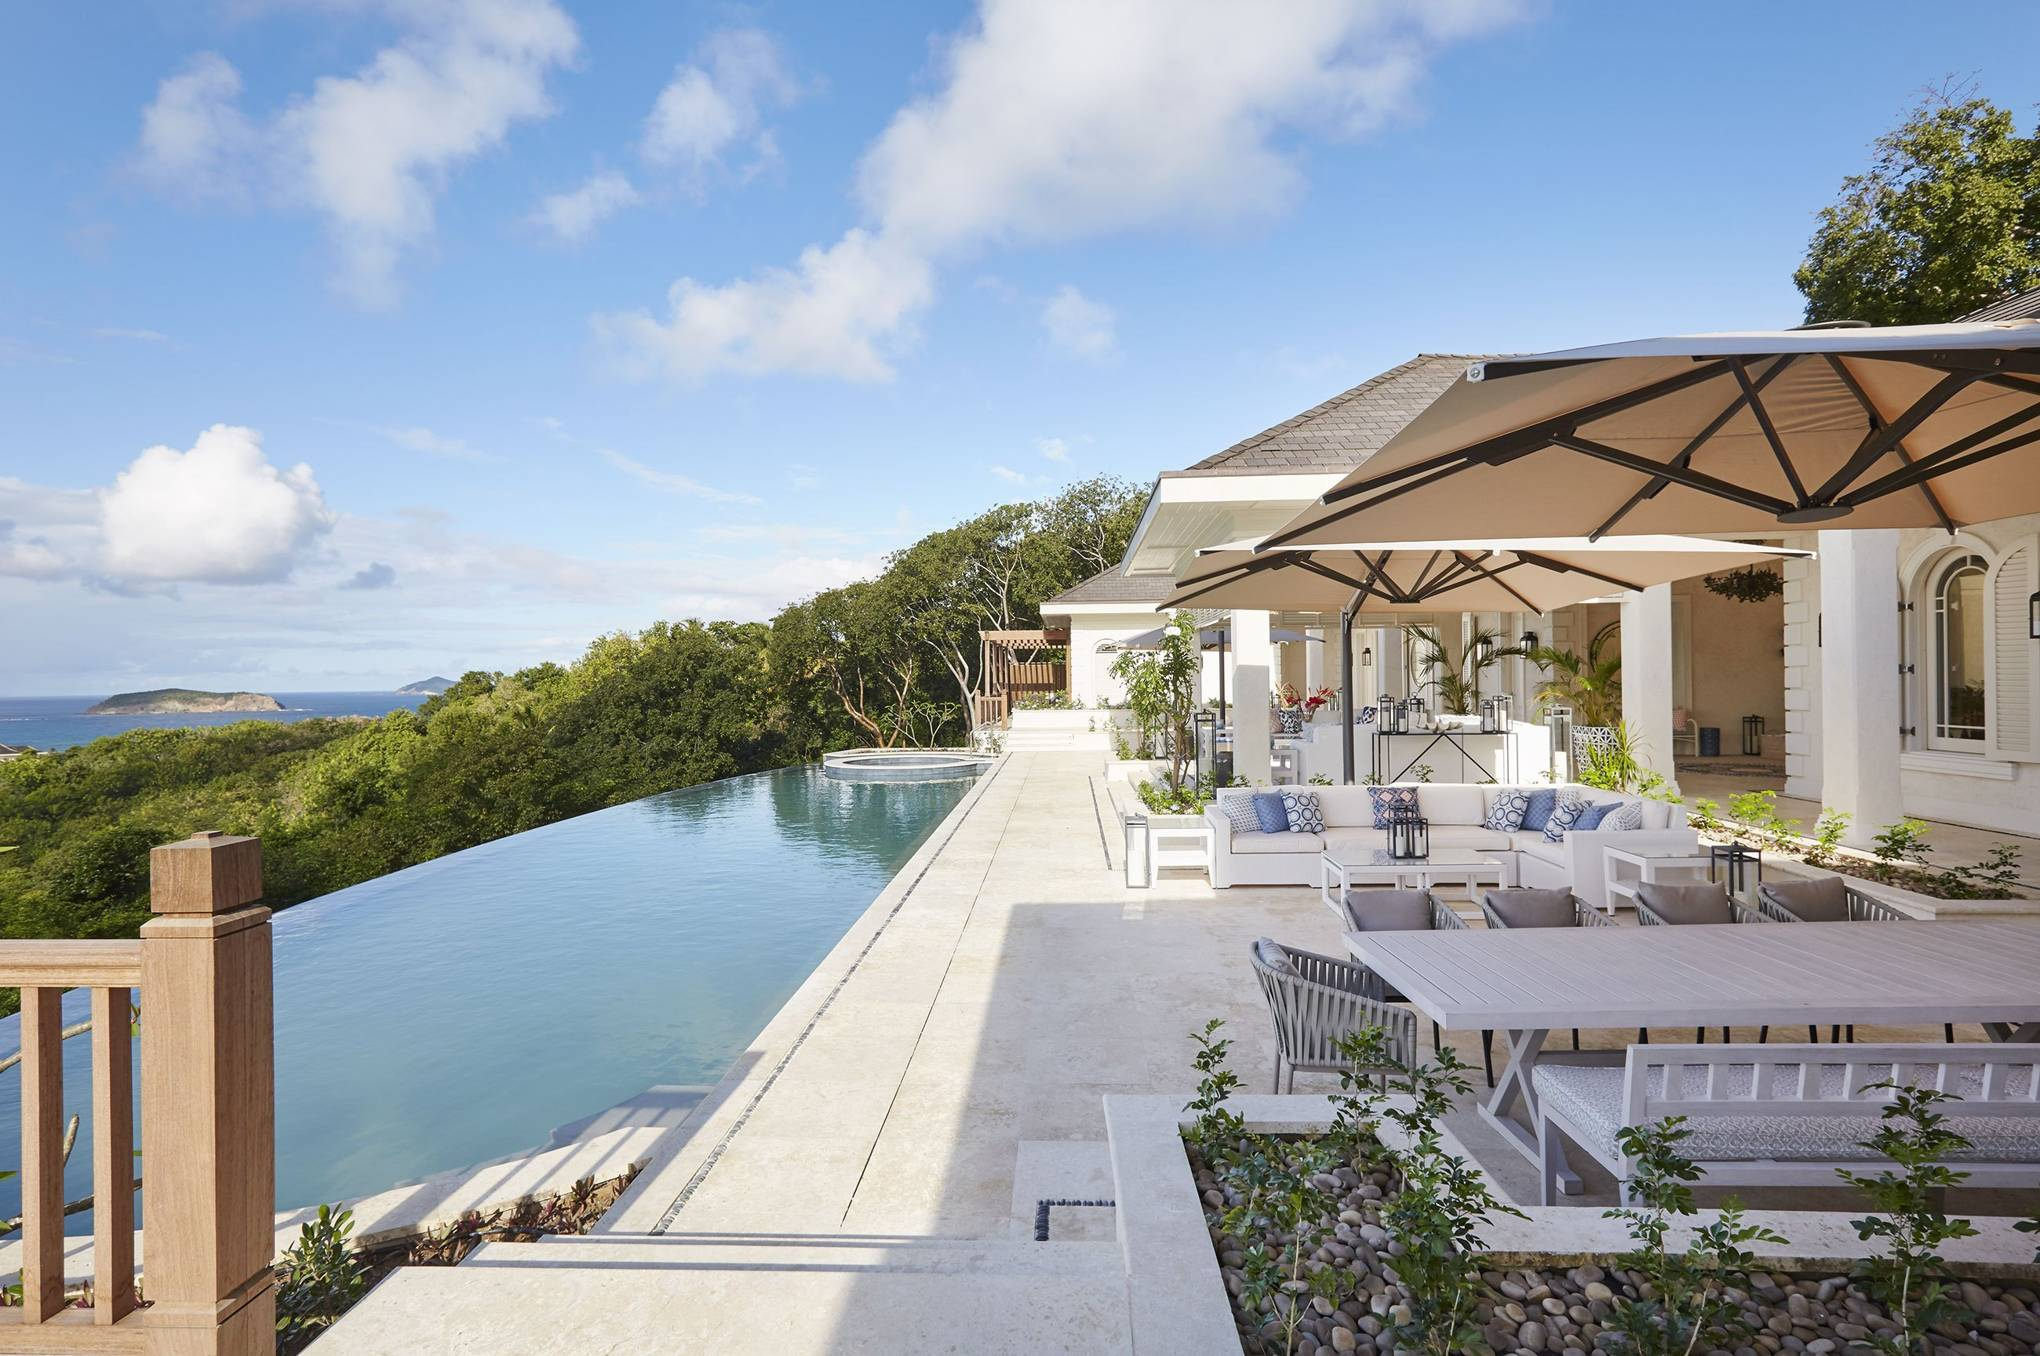 Inside the luxury Mustique villa Kate Middleton and Prince William holidayed in